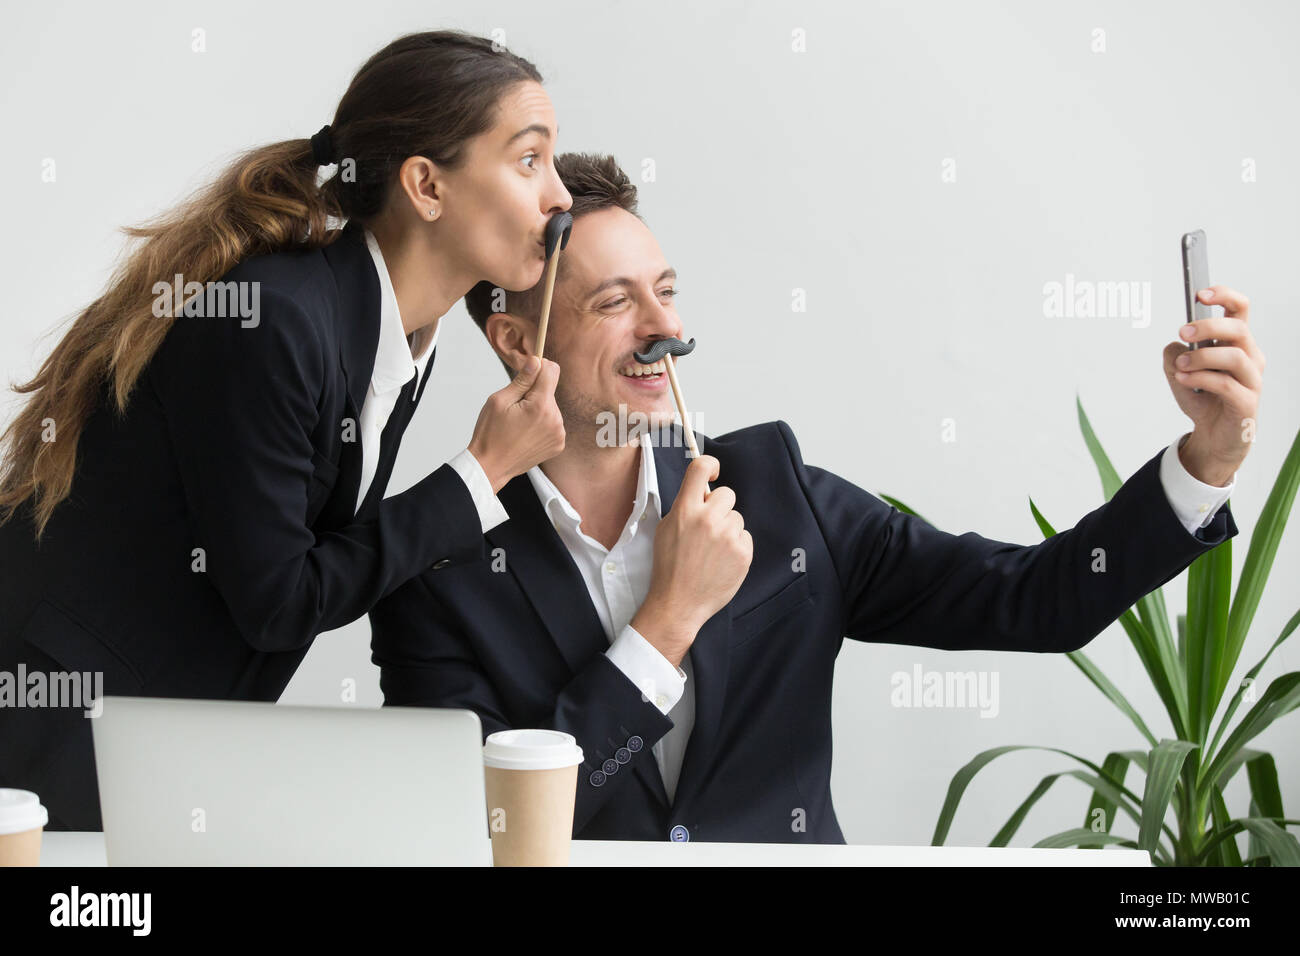 Friendly colleagues grimacing holding fake mustache taking selfi - Stock Image